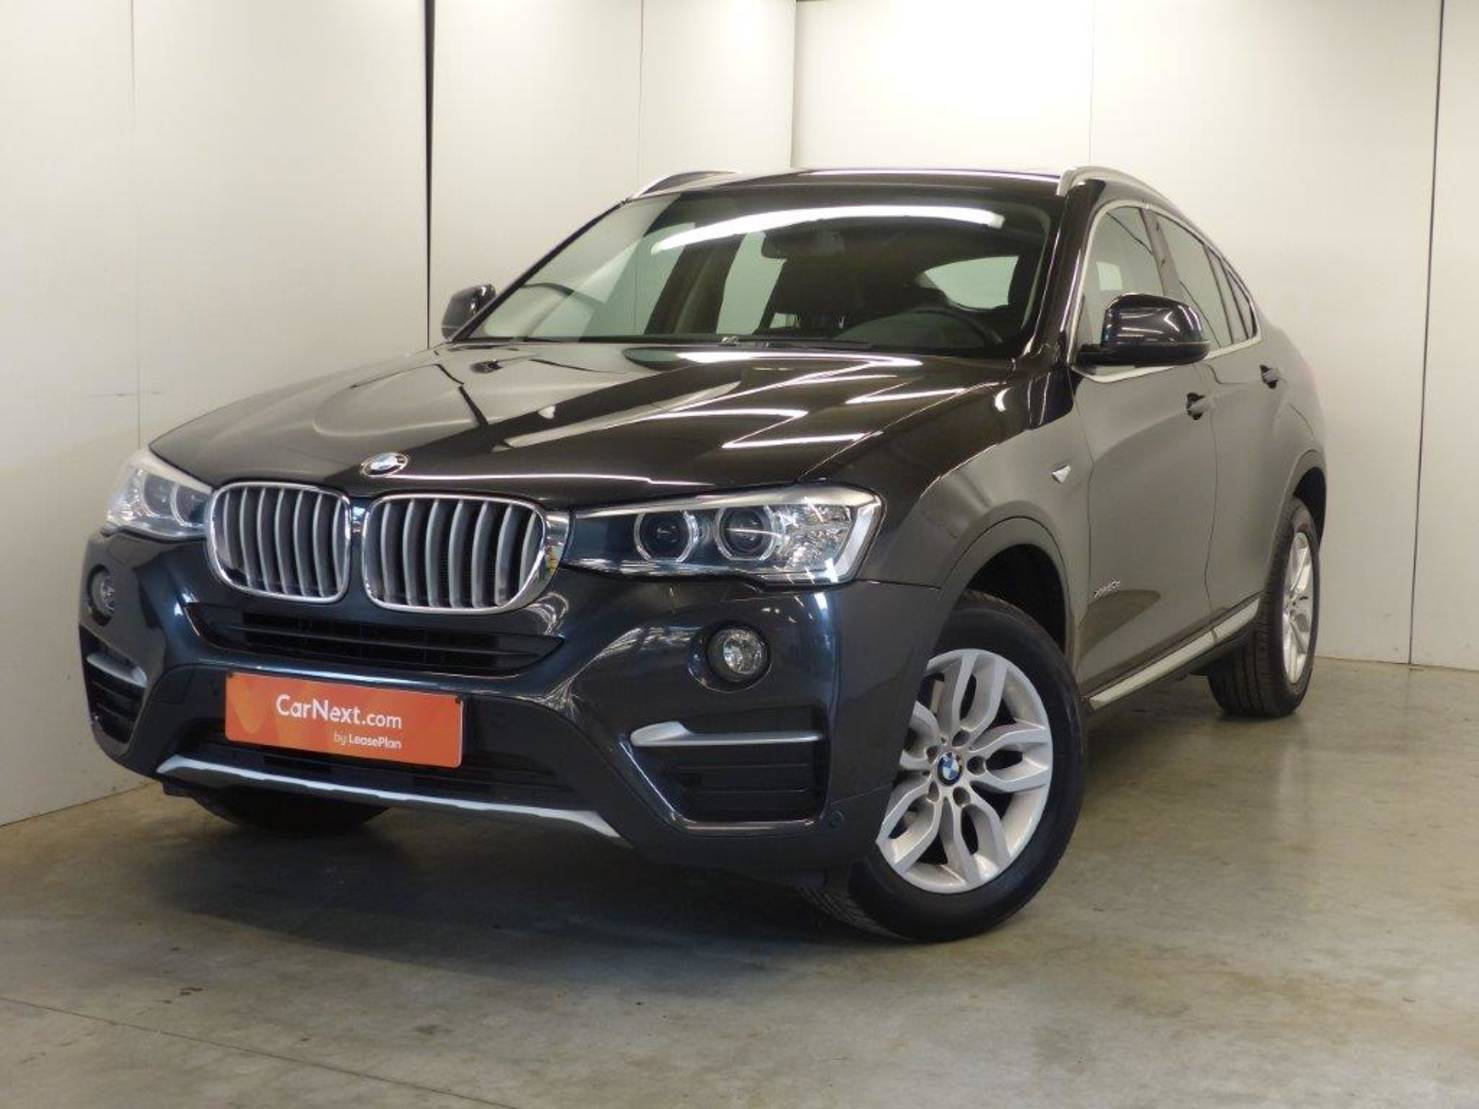 BMW X4 2.0 dA xDrive20 BI XENON PDC CAM HILL ASSIST KEYLESS detail2